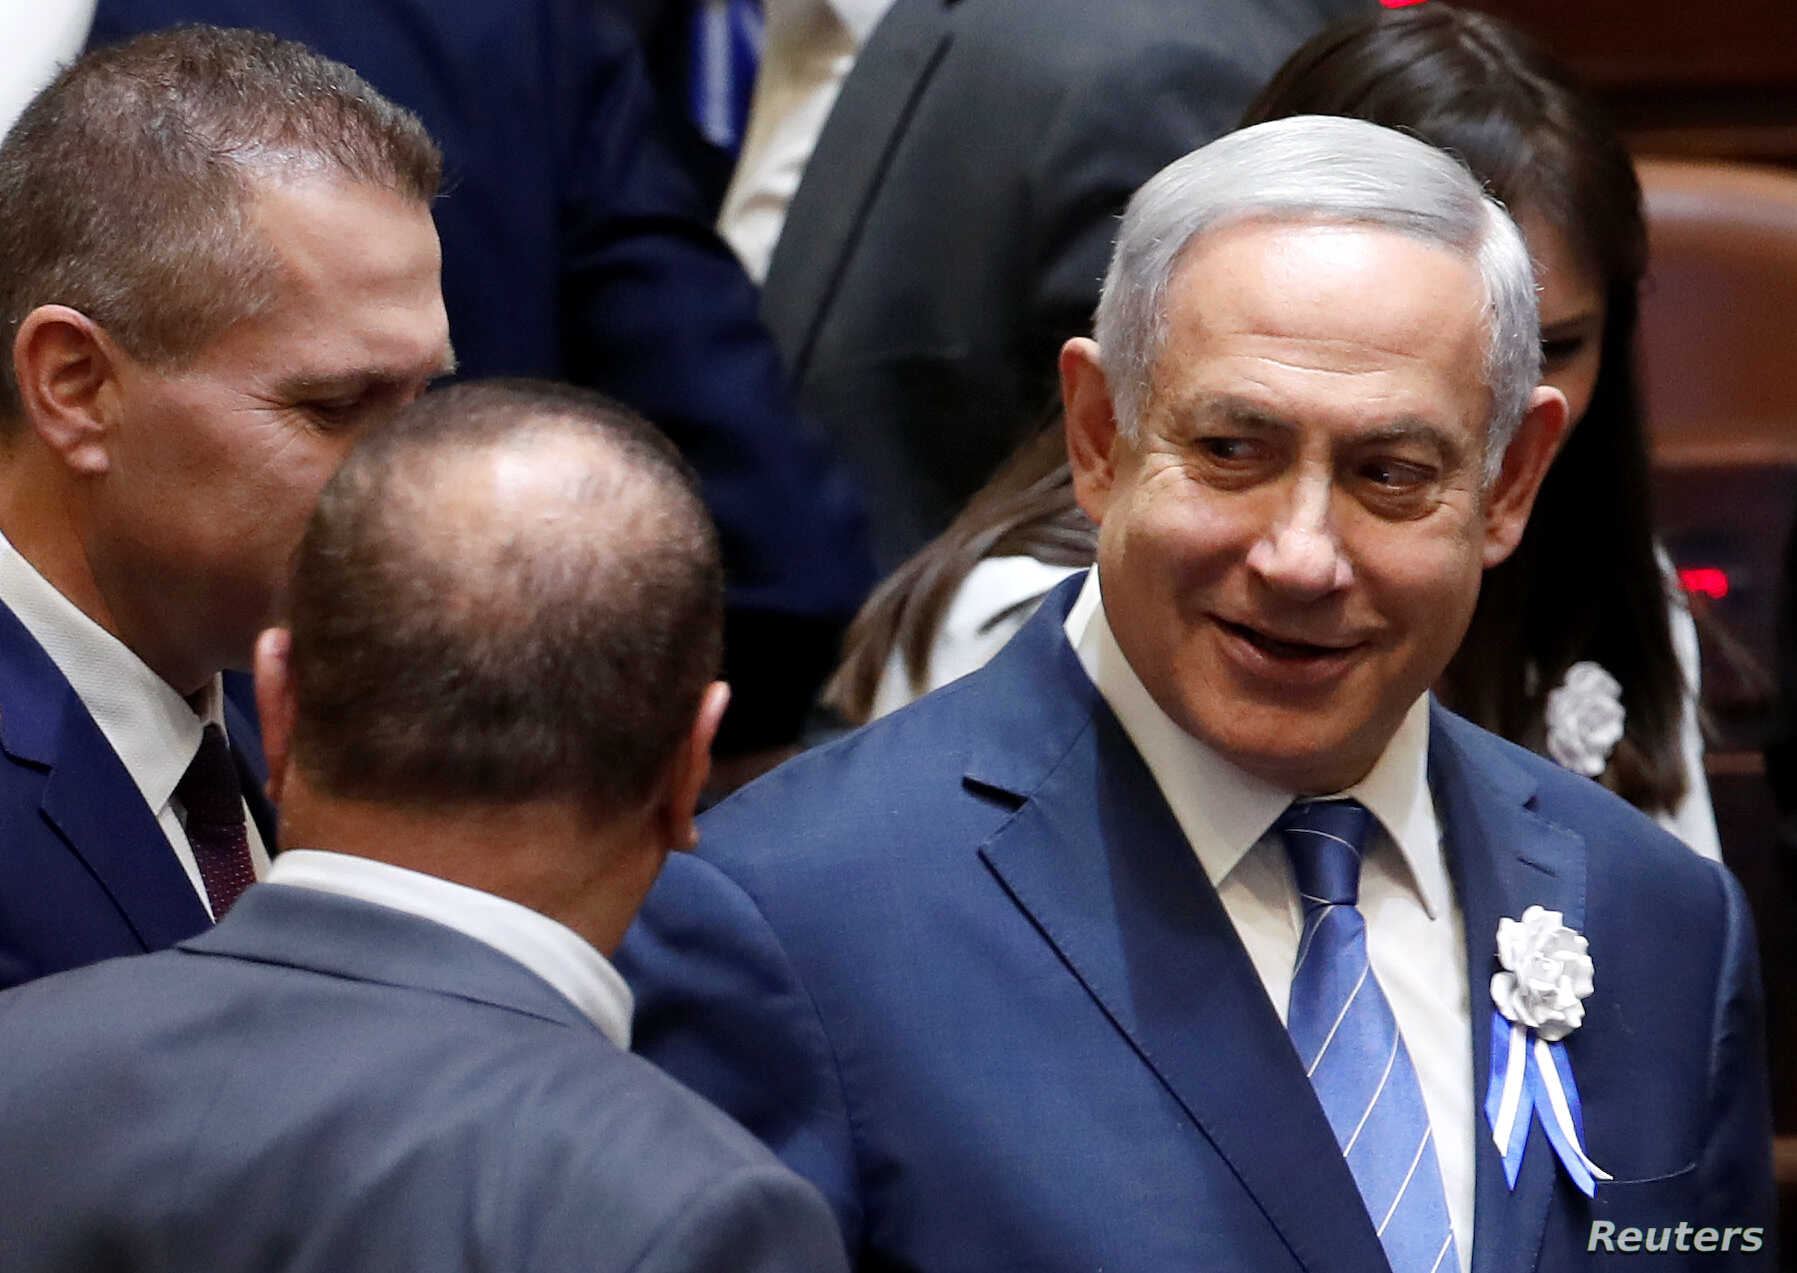 Israeli Prime Minister Benjamin Netanyahu arrives to attend an inauguration ceremony of Israel's 21st Knesset, or parliament, in Jerusalem, April 30, 2019.